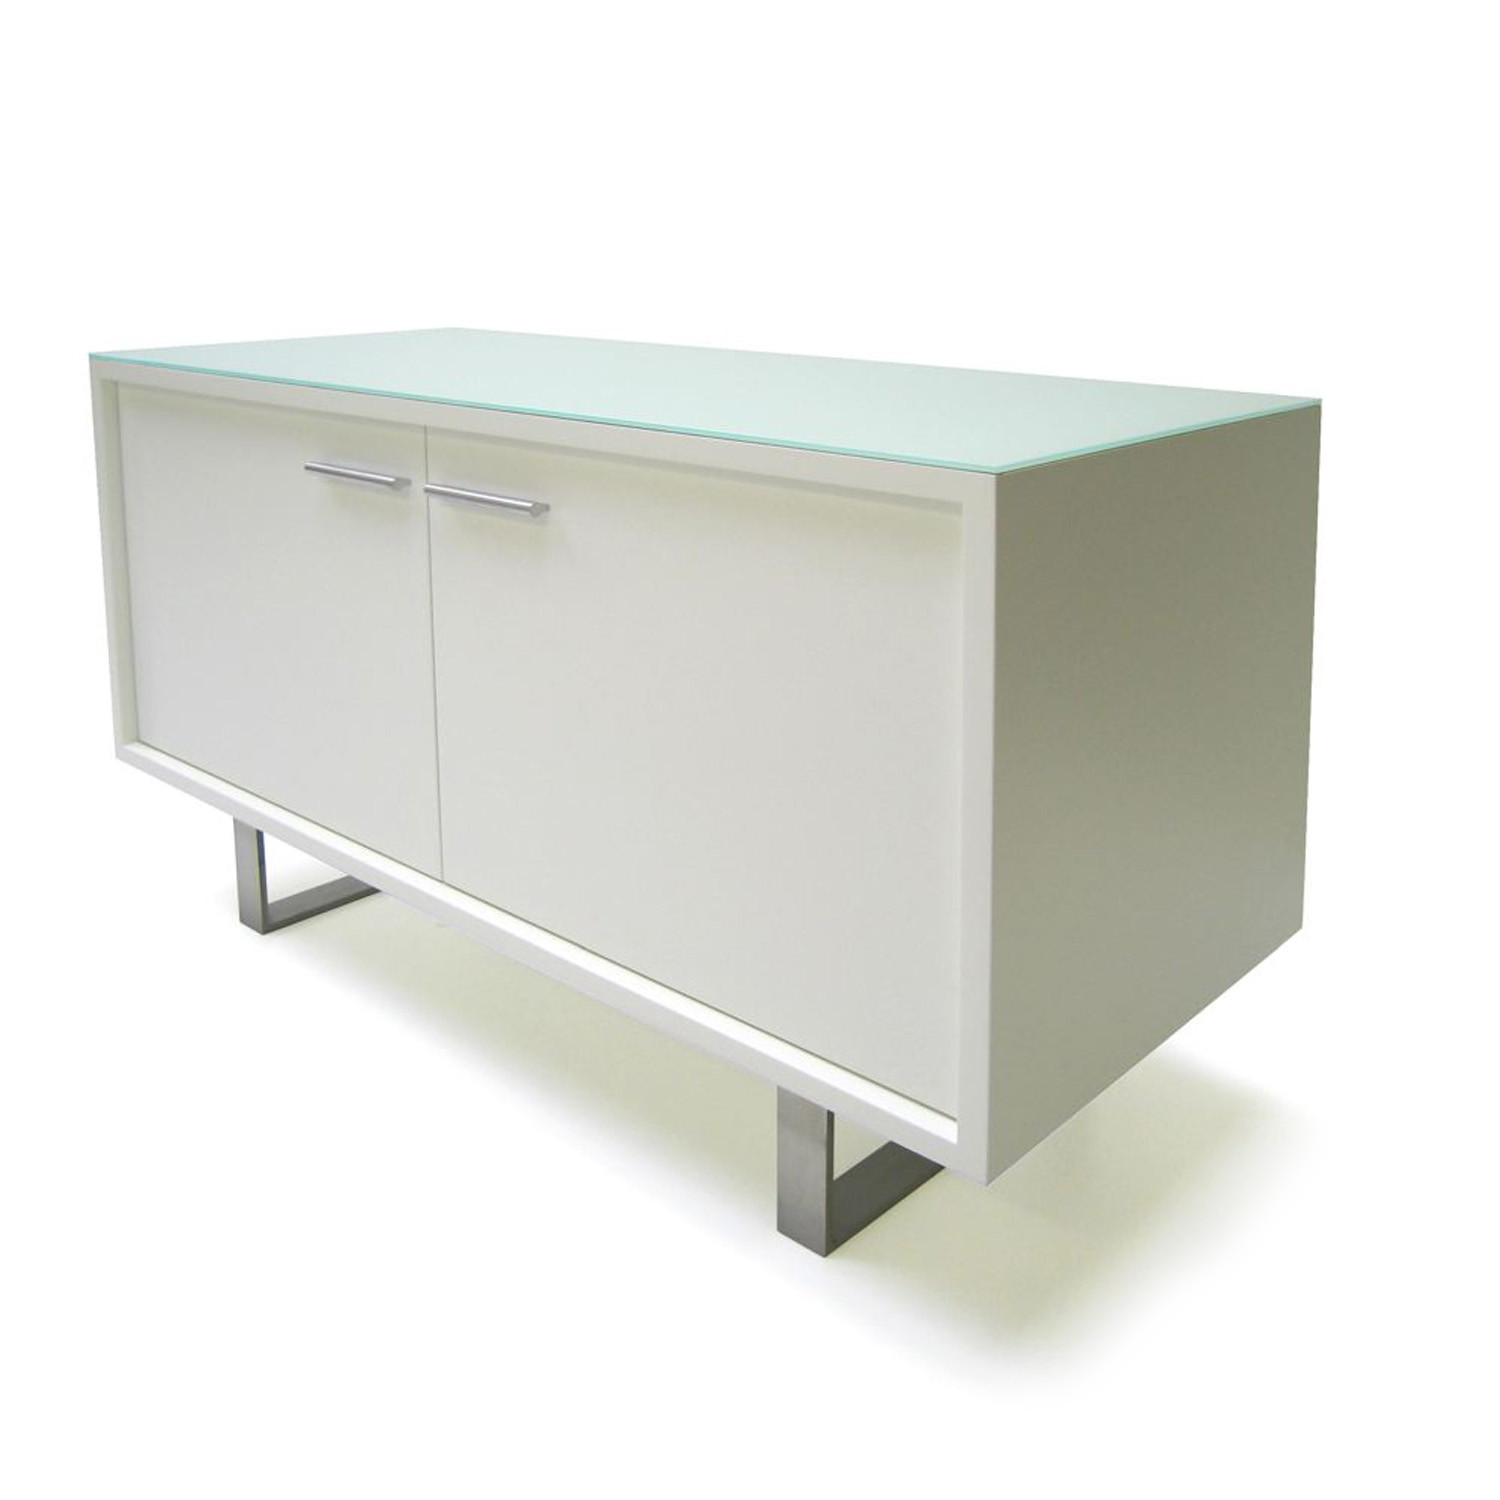 Series 2 Credenza Unit - Glass Top